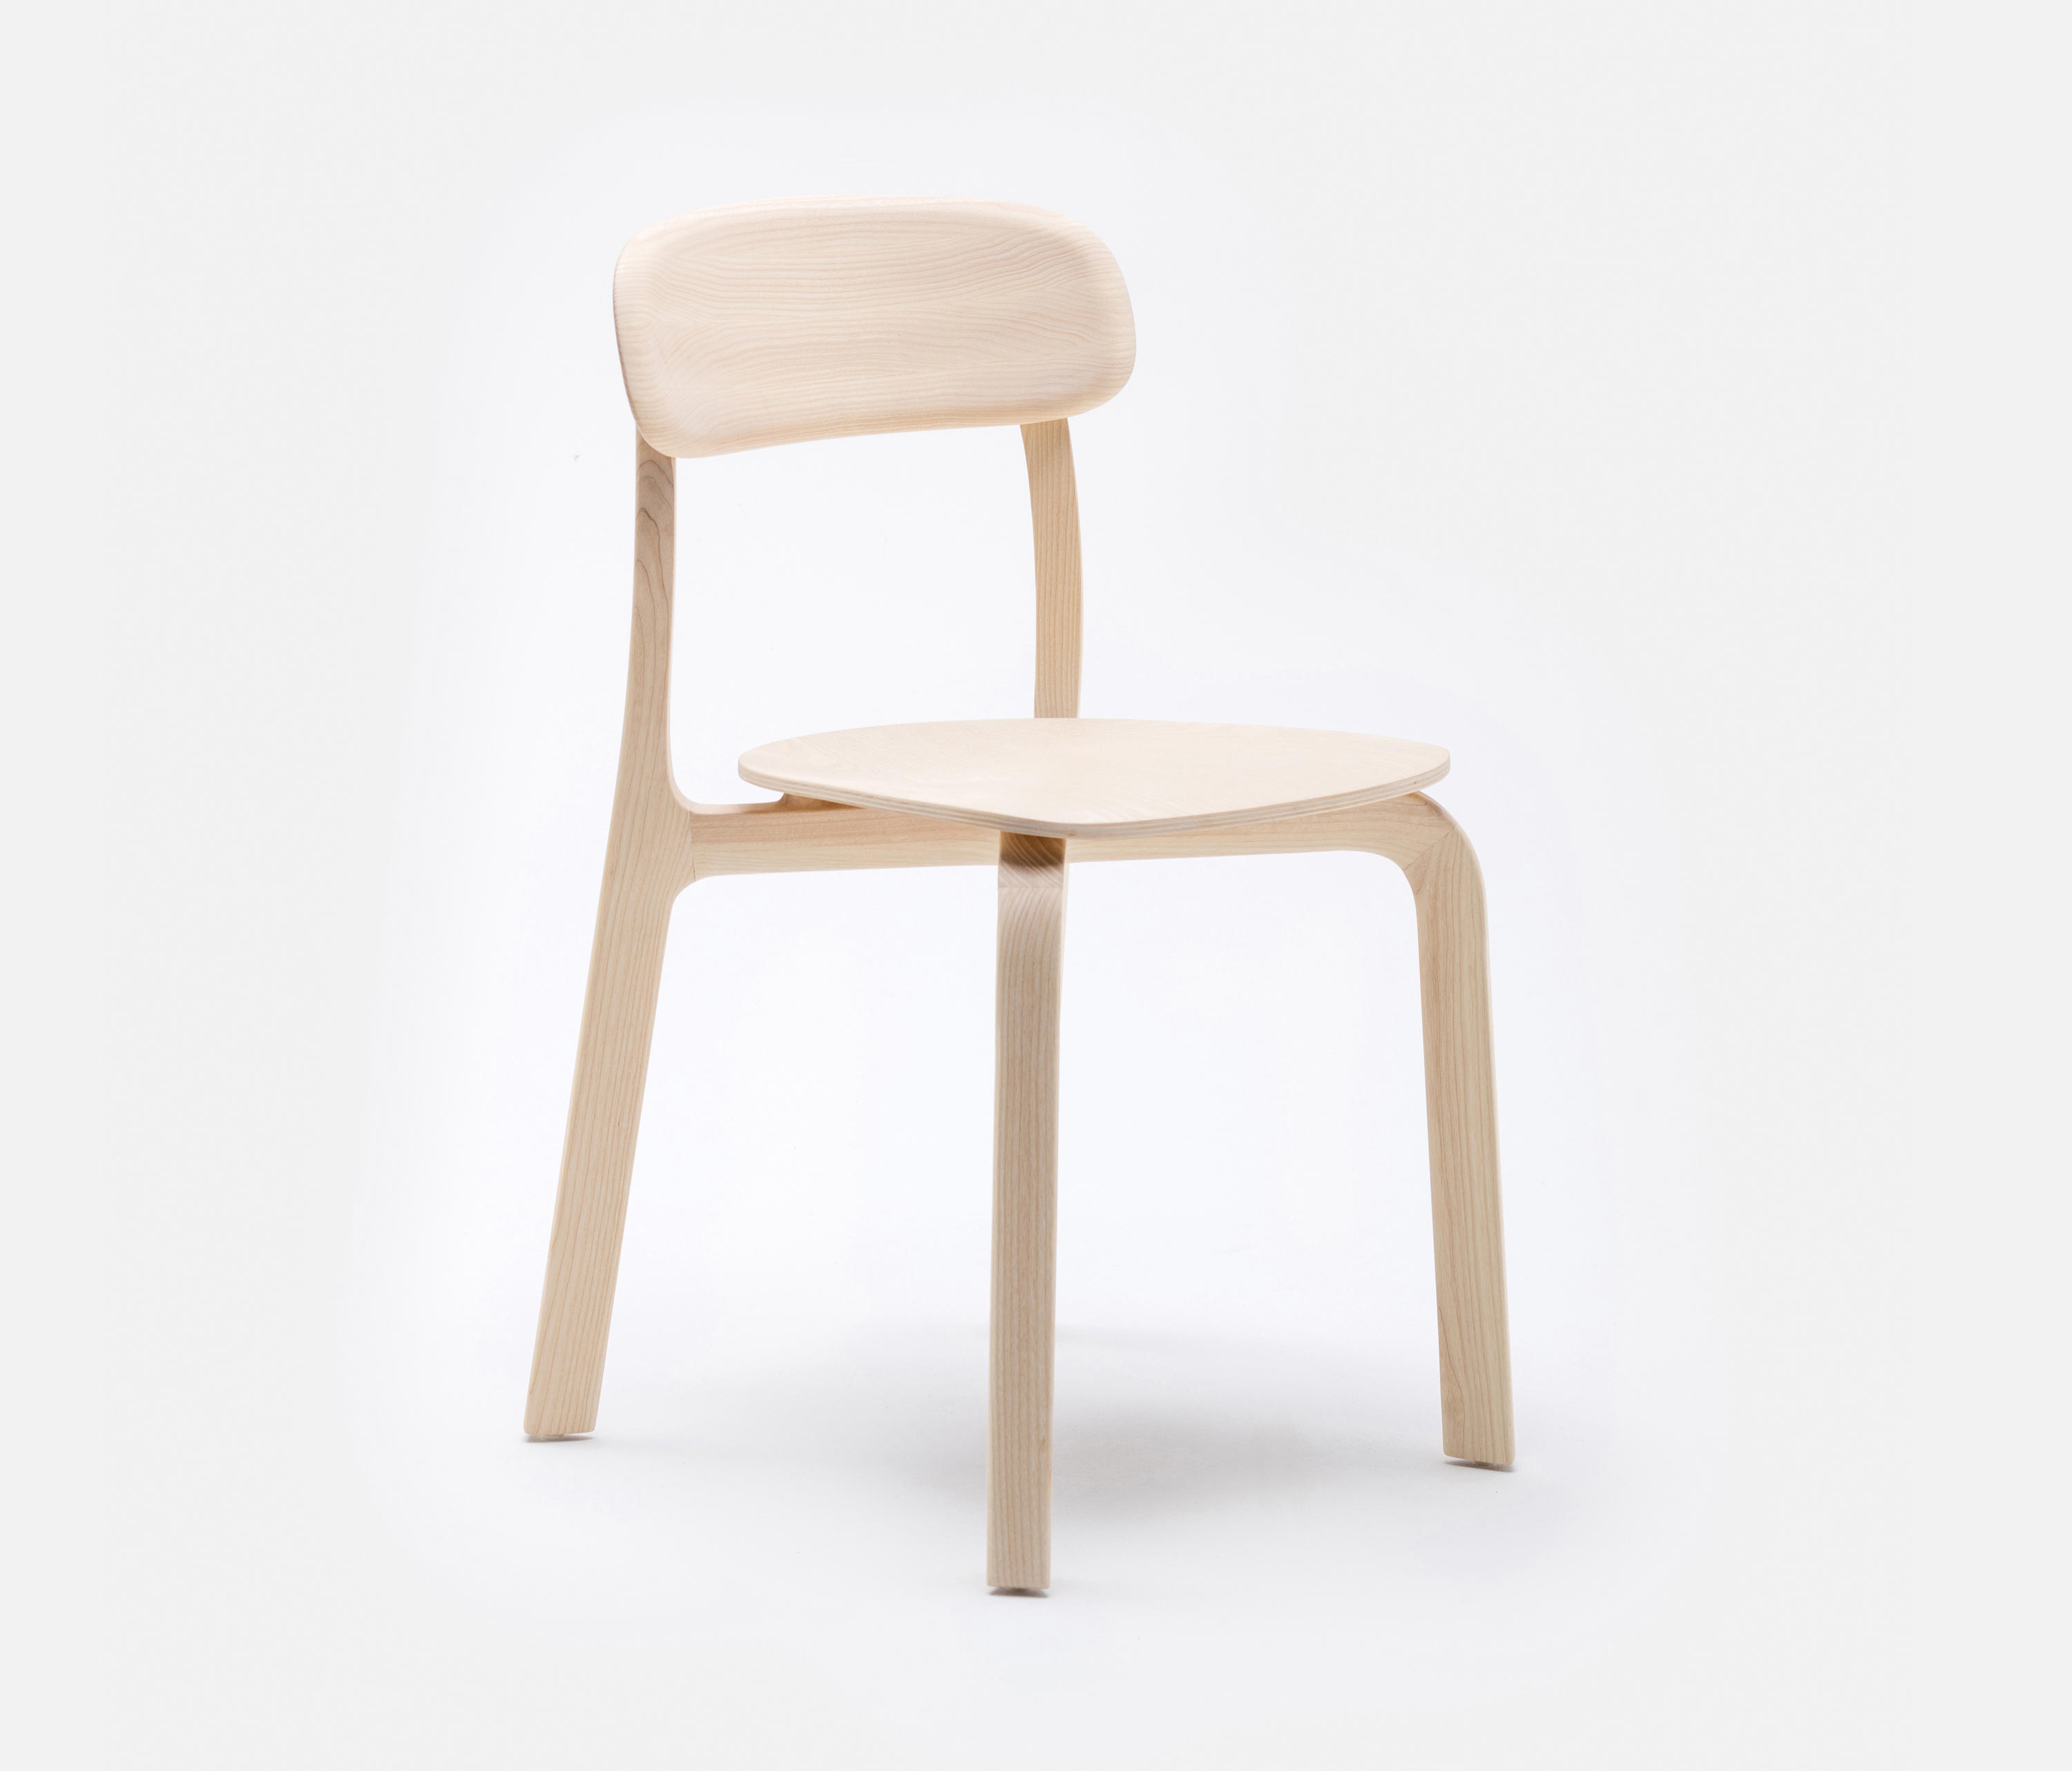 Alter Stackable Chair Designer Furniture Architonic